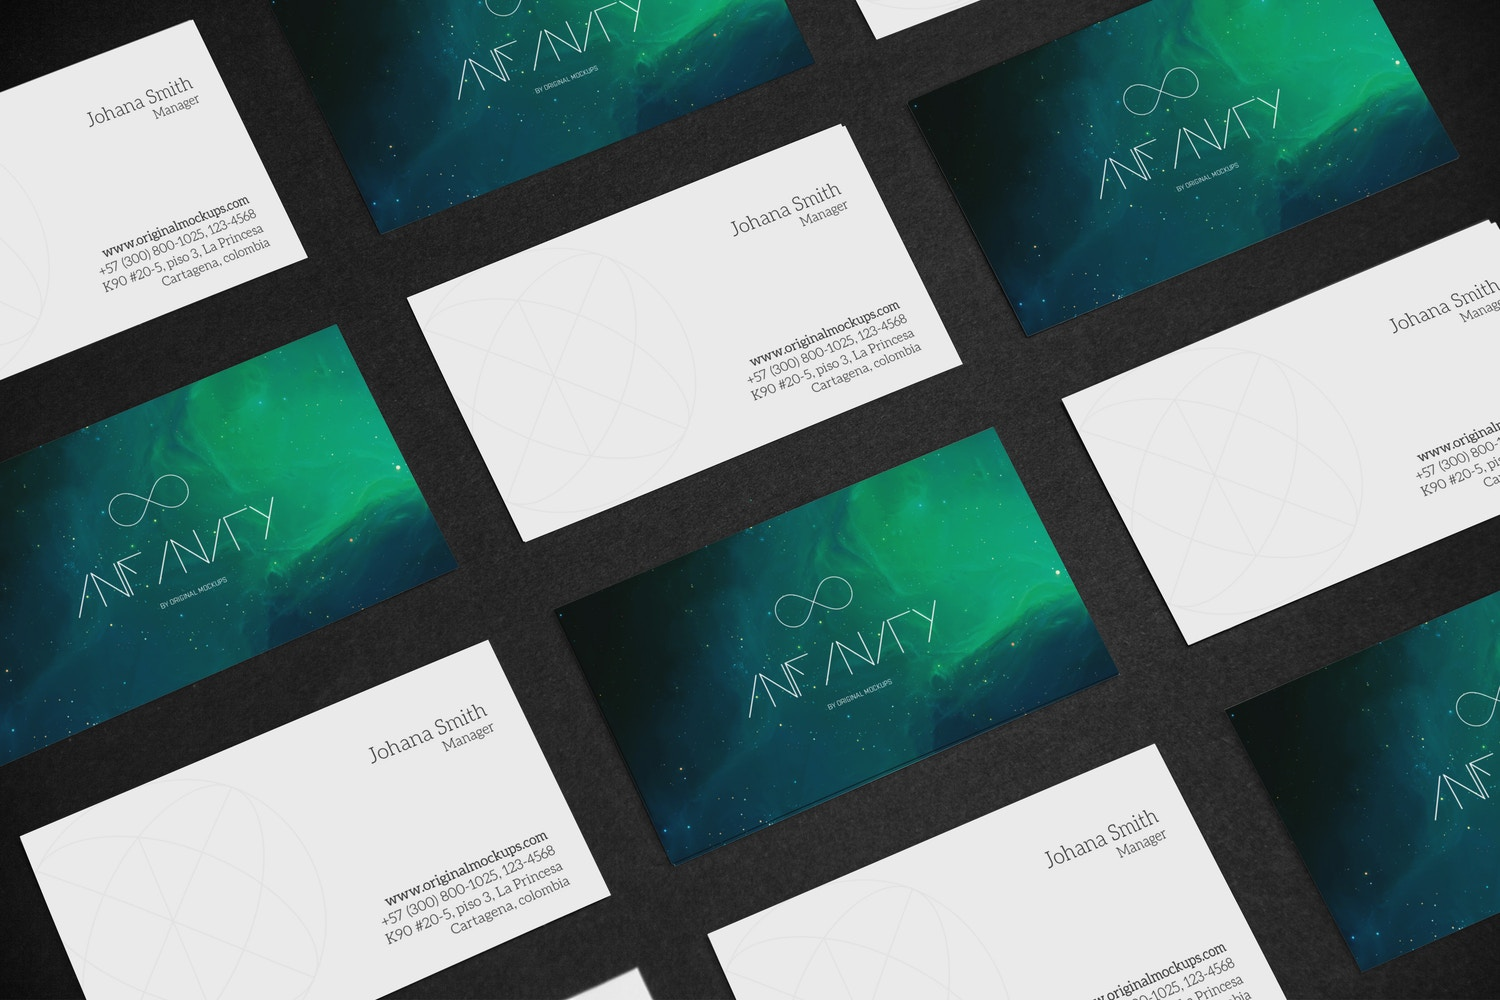 Business Card Mockup 5 by Original Mockups on Original Mockups